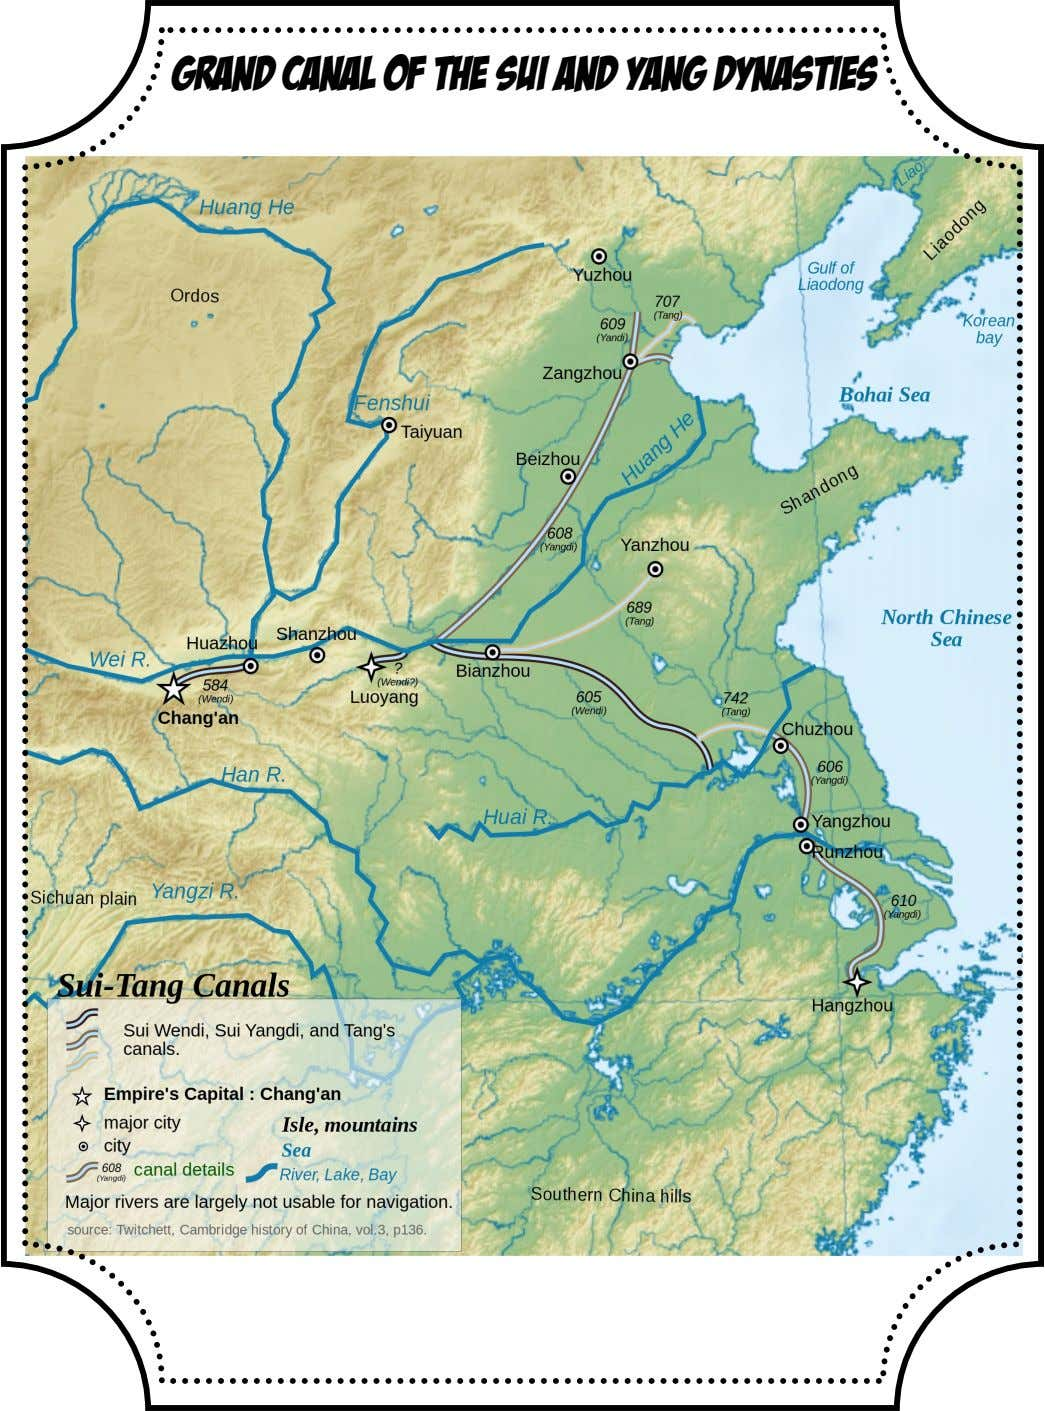 Grand Canal of the Sui and Yang Dynasties